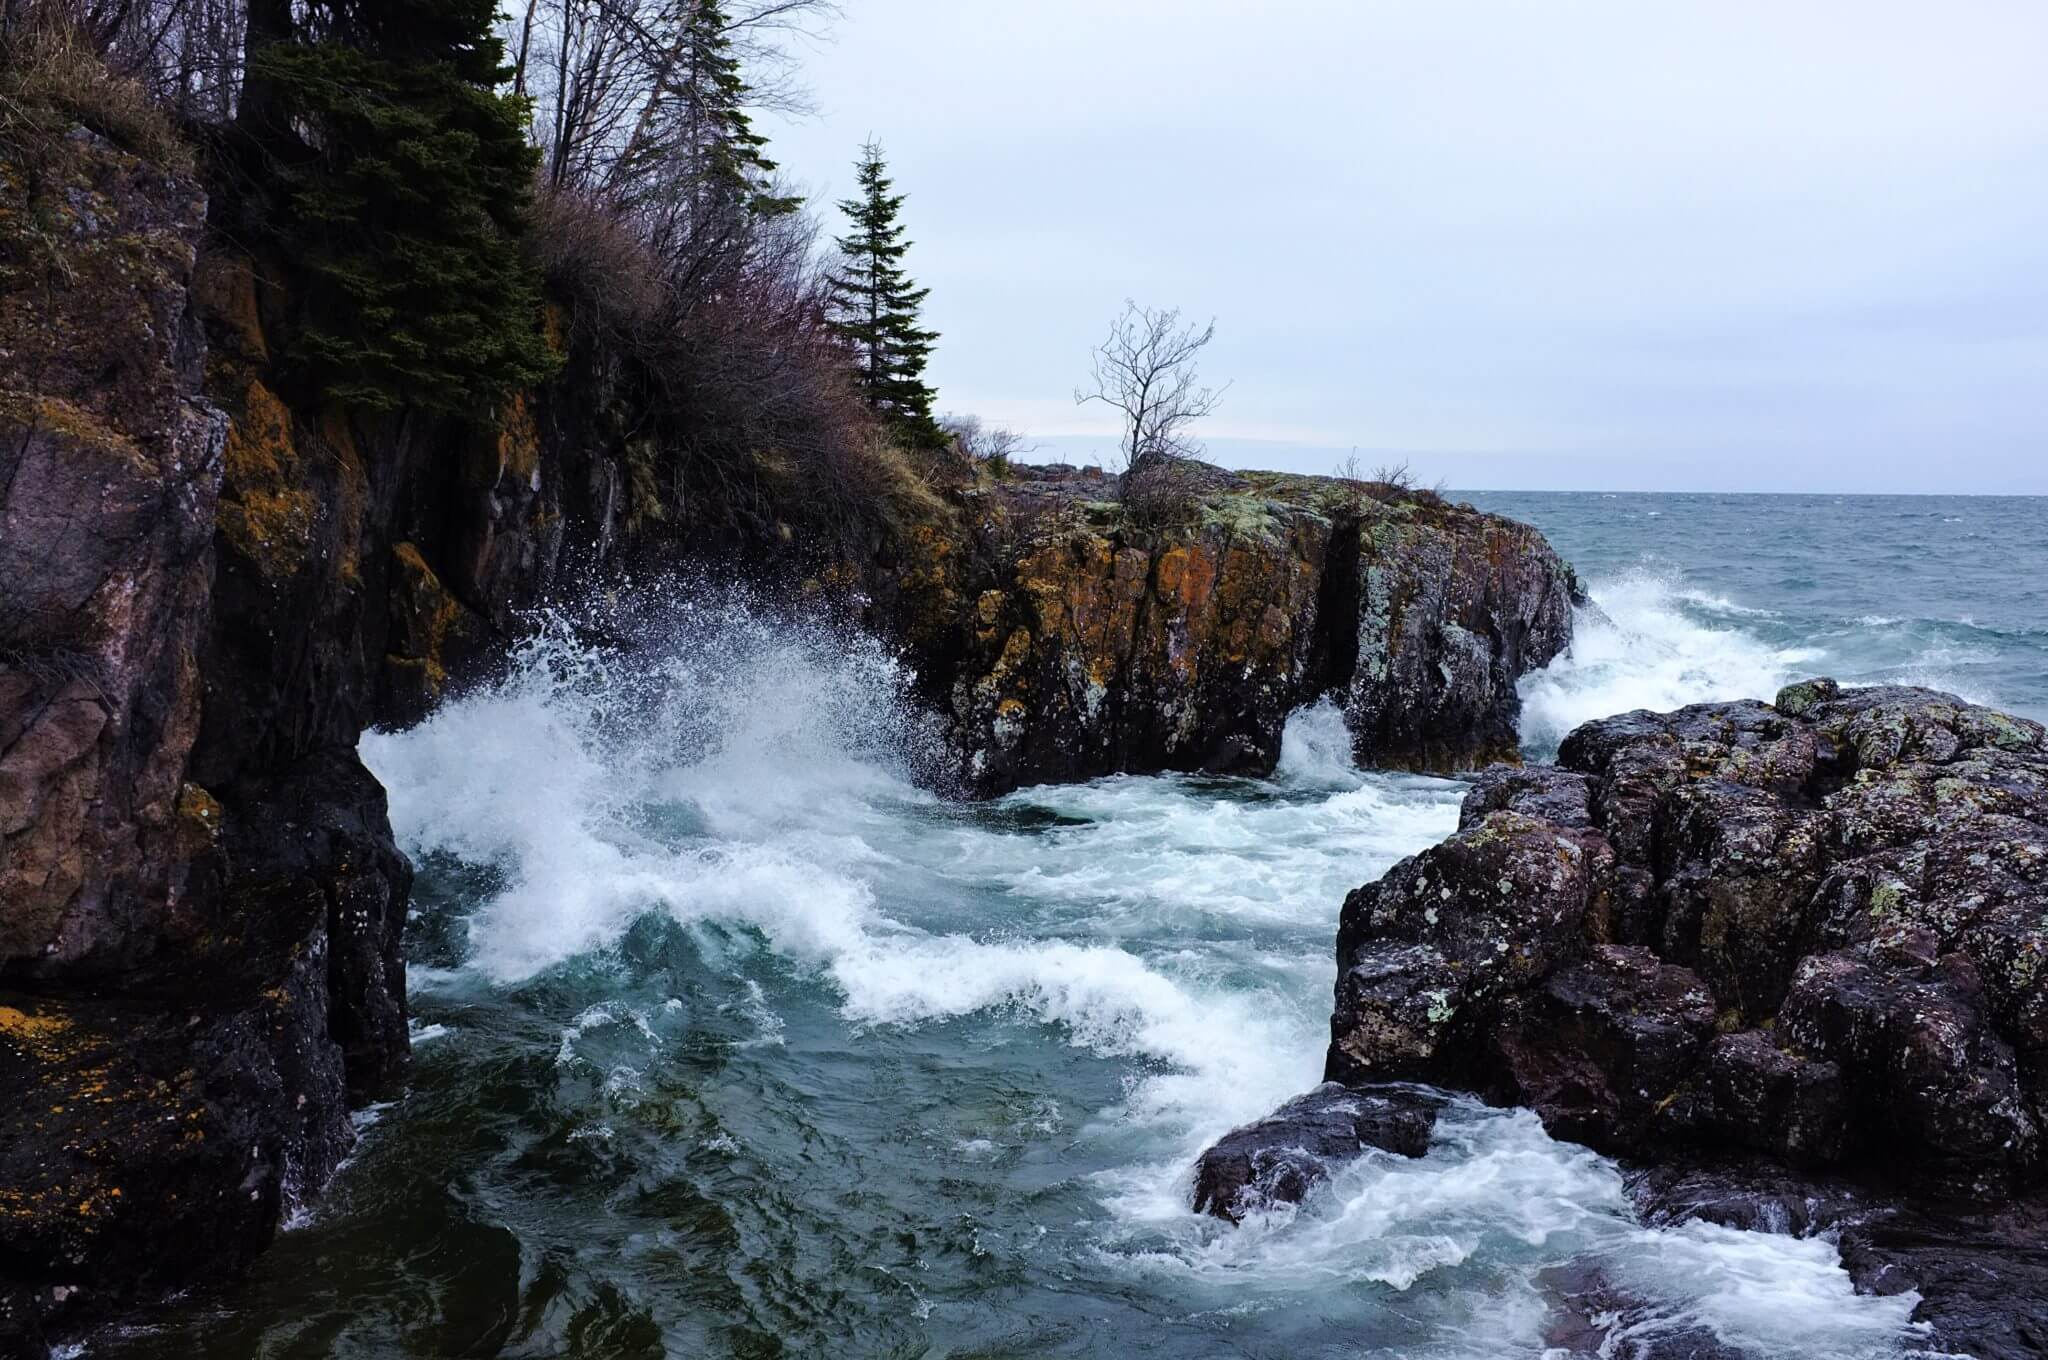 Cove near the mouth of the Temperance river